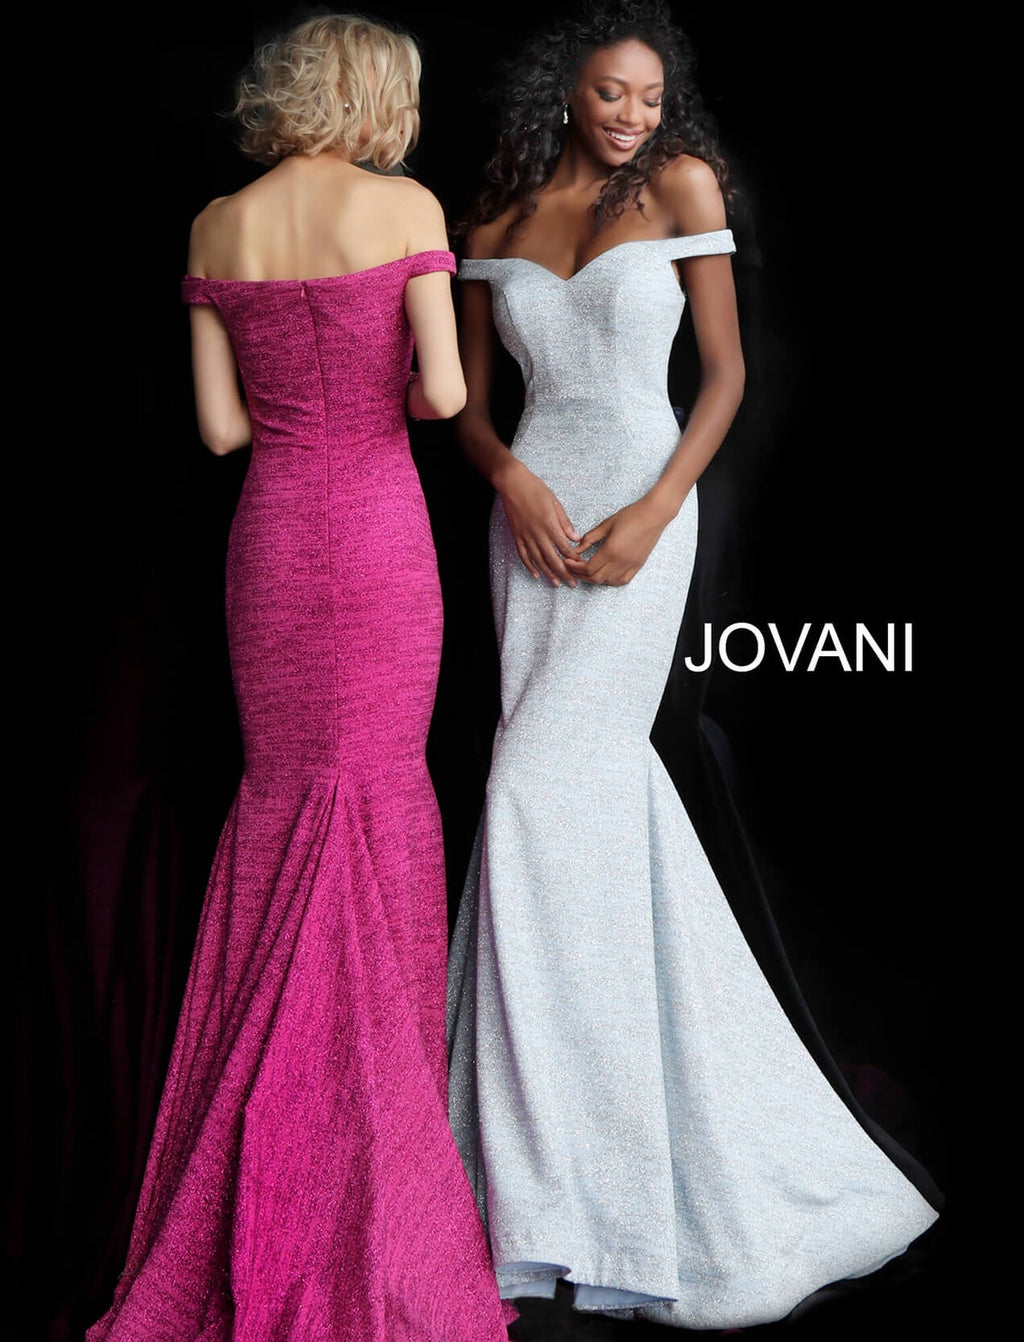 JOVANI 60122 Off Shoulder Glitter Evening Dress - CYC Boutique